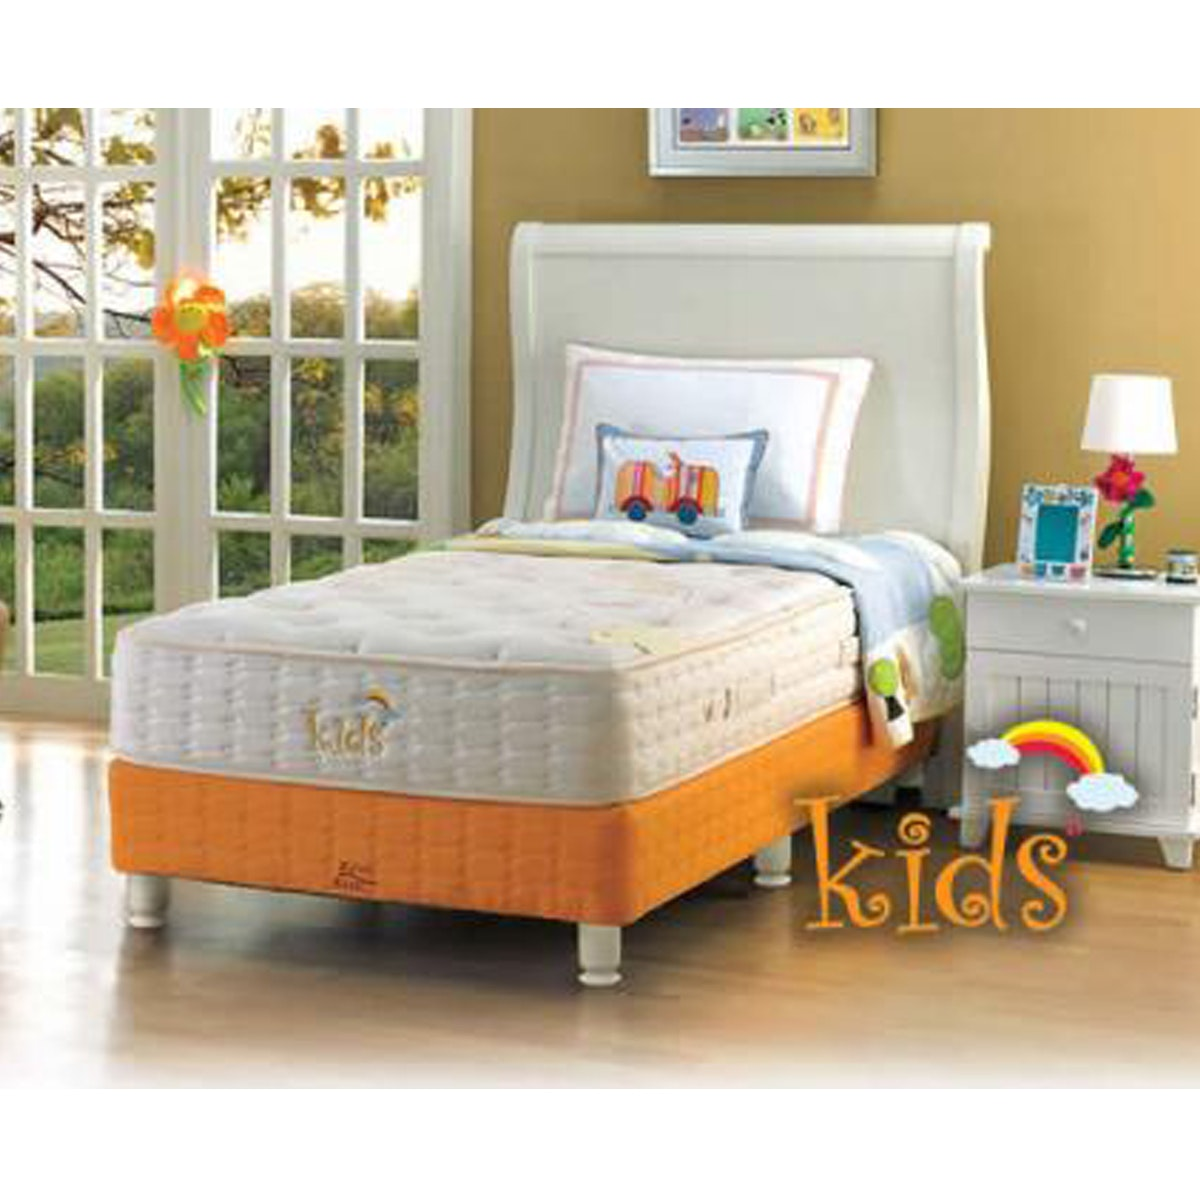 King Koil Kasur Kids Single Uk 120x200